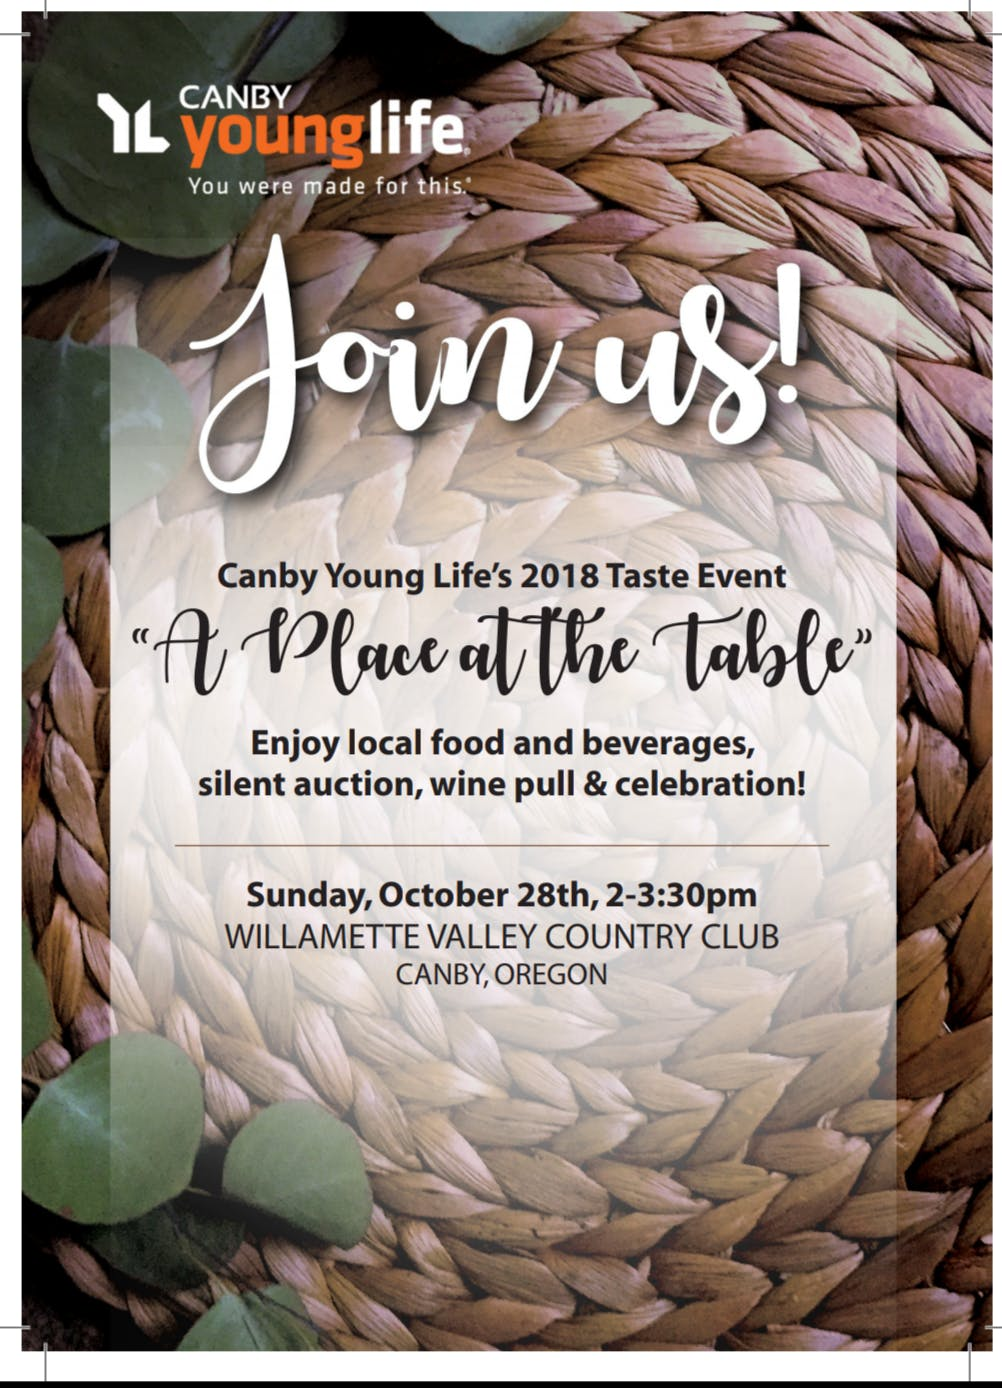 A Place at the Table - Canby Young Life's Taste Event - 28